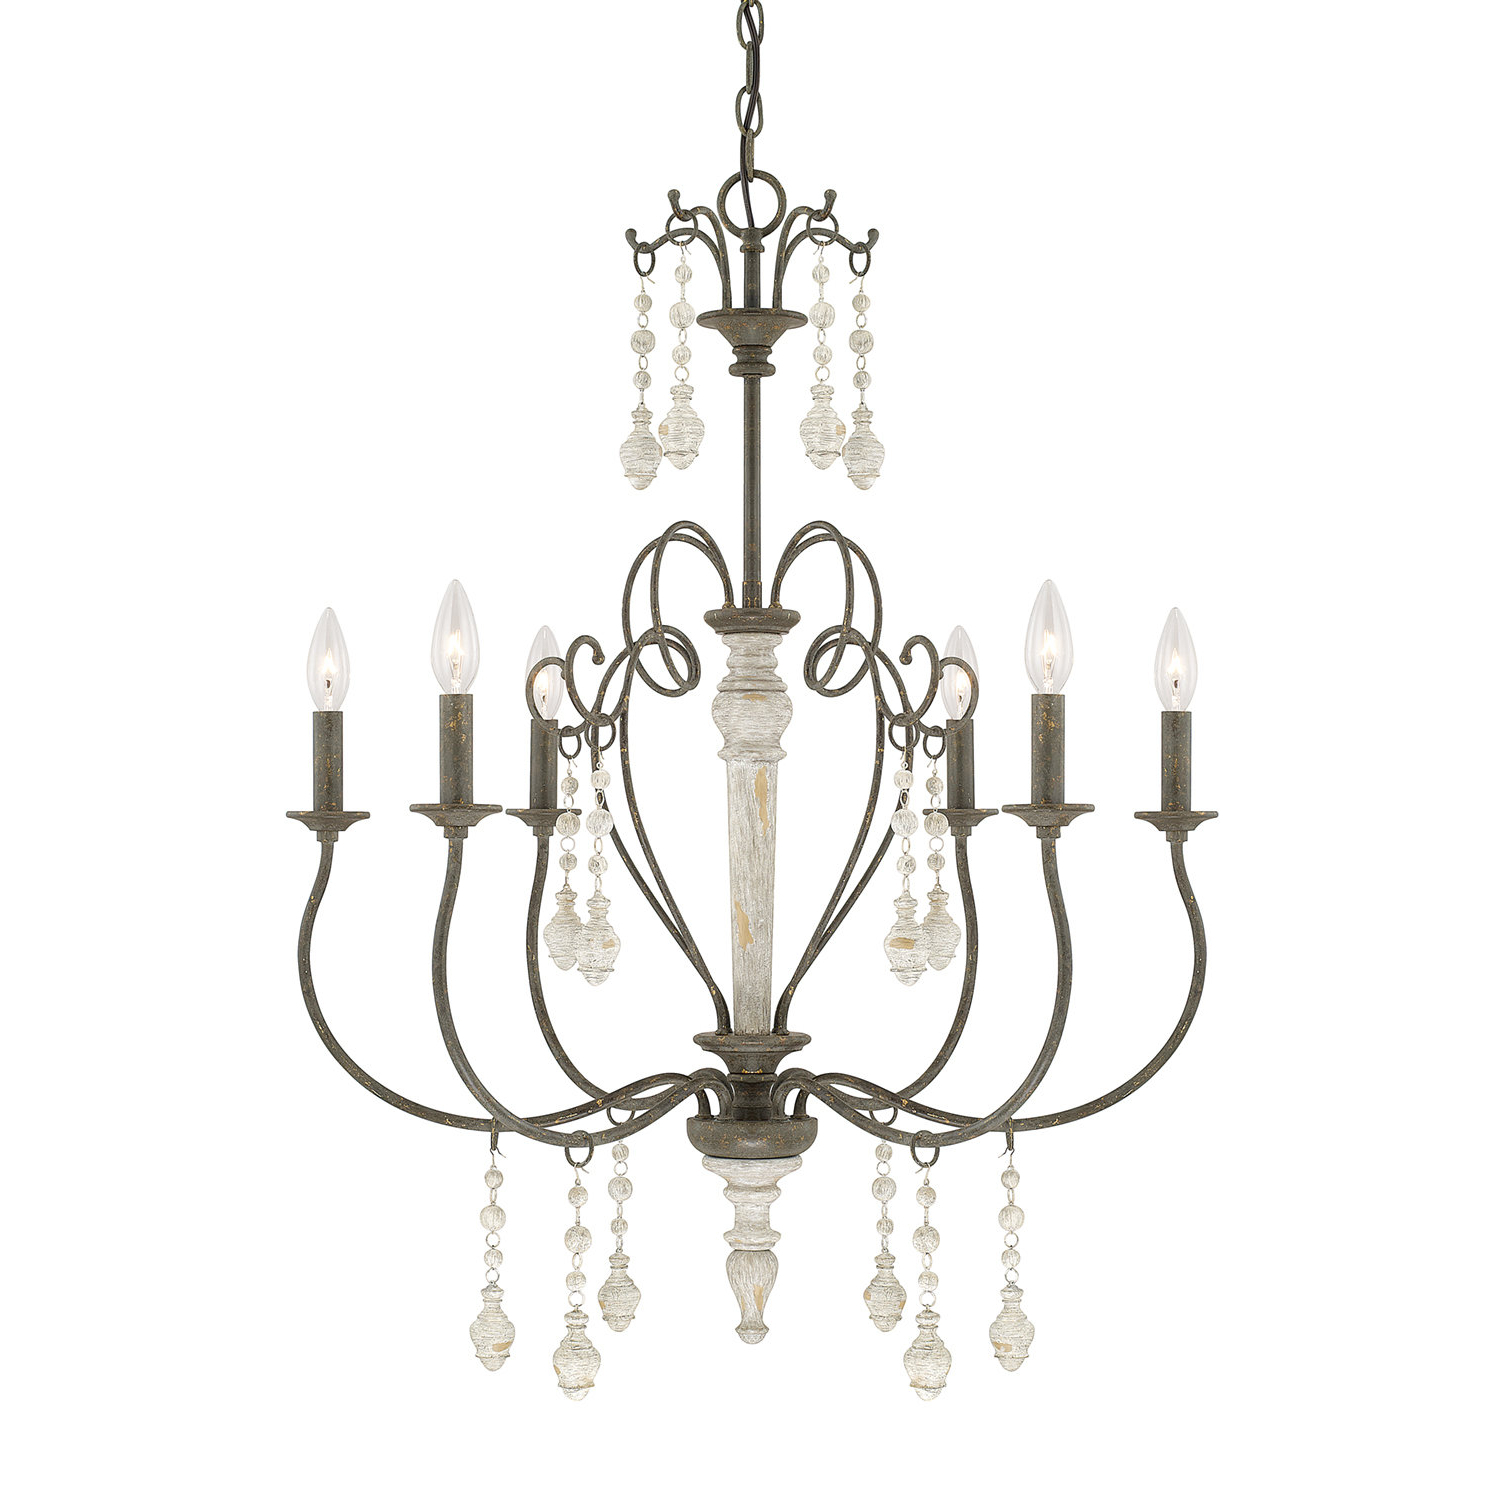 Bouchette Traditional 6-Light Candle Style Chandelier in Newest Bouchette Traditional 6-Light Candle Style Chandeliers